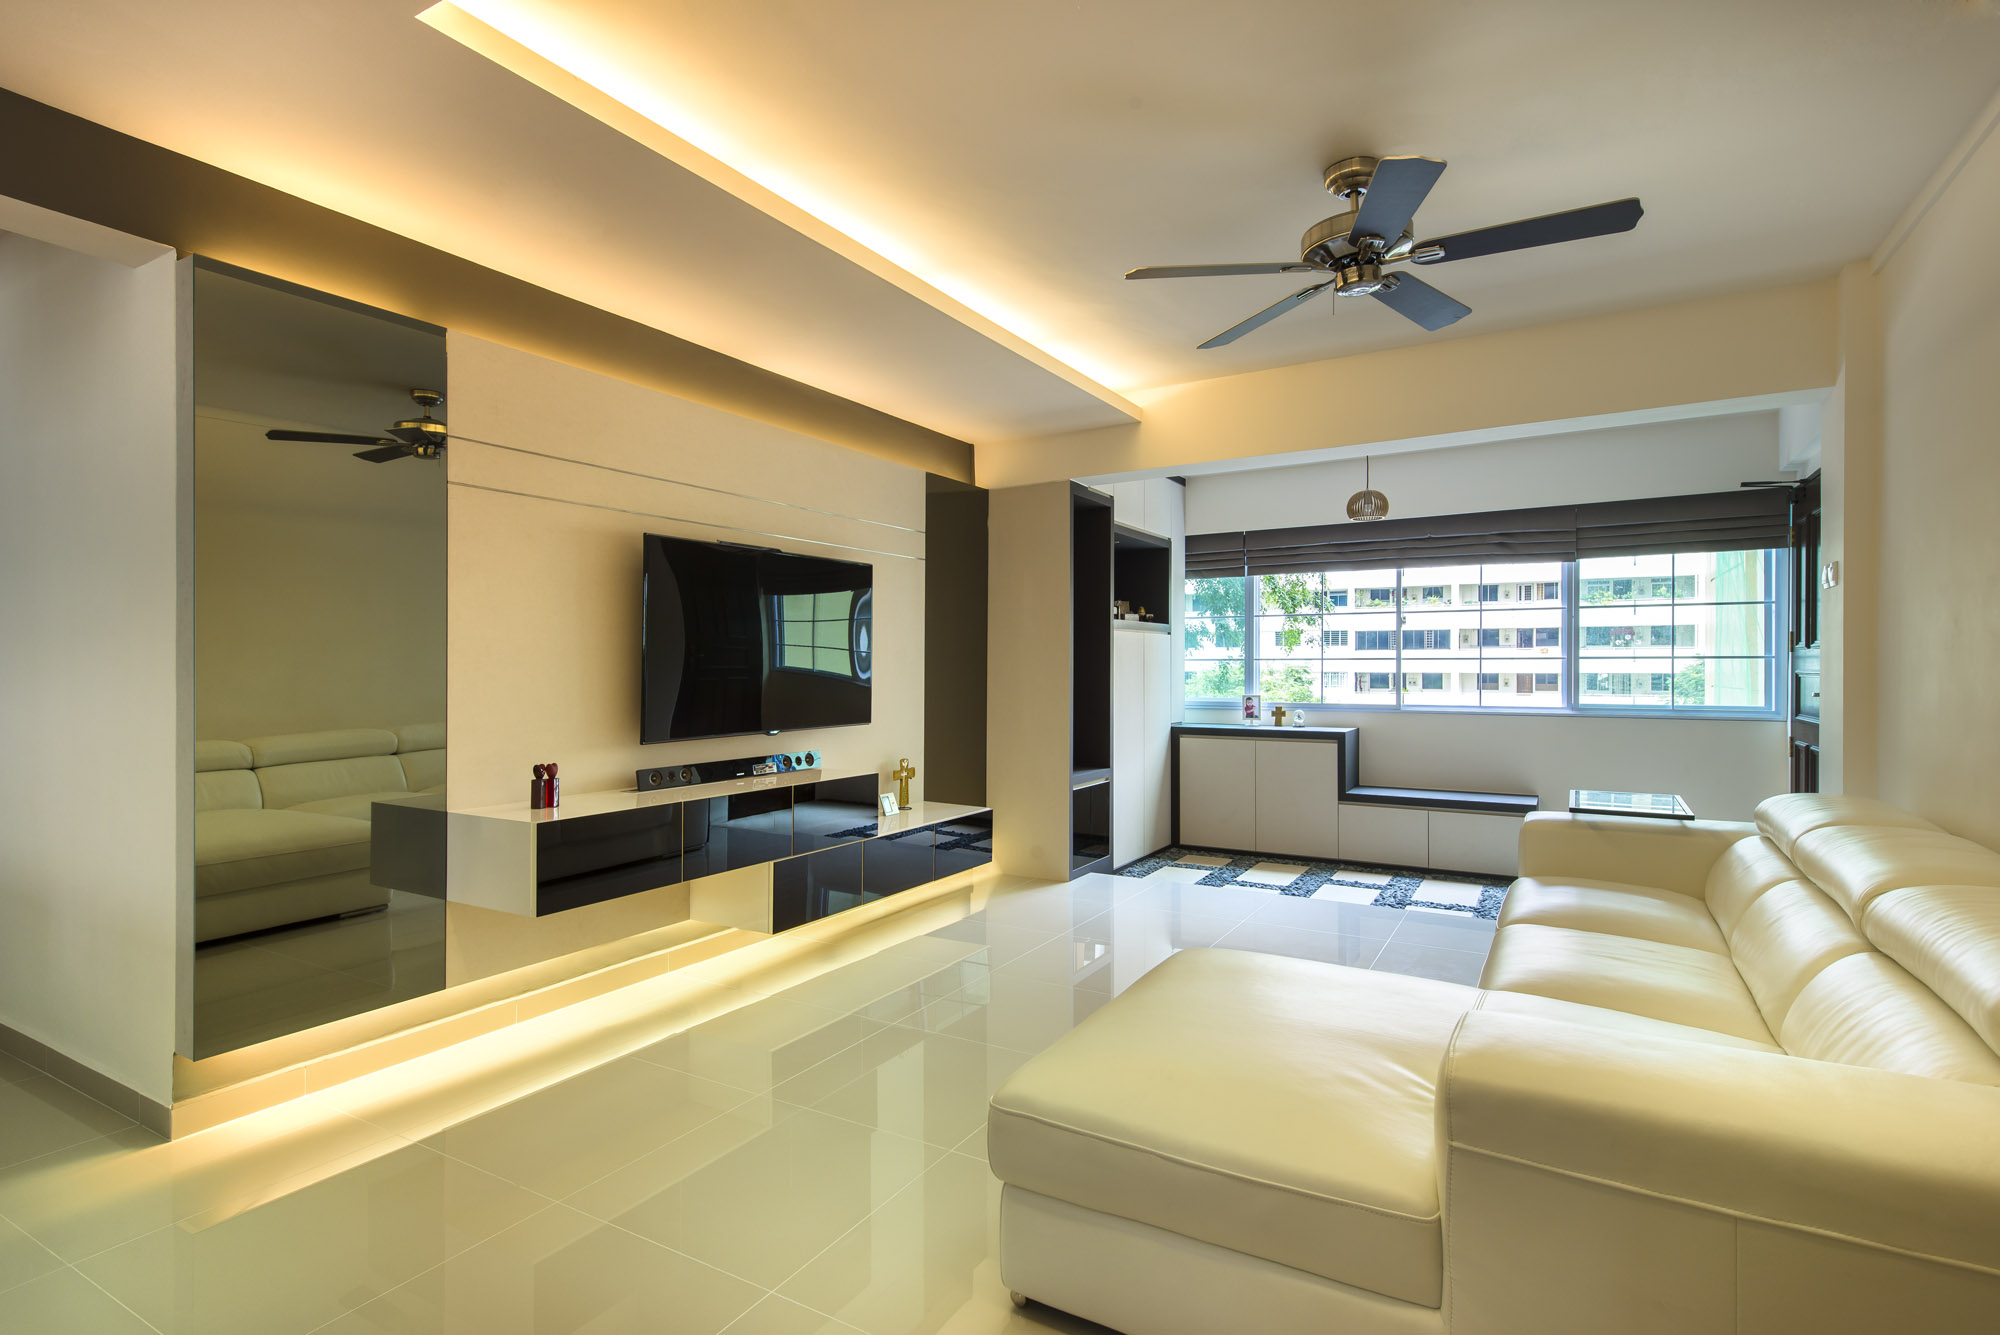 Case Study Hdb 5 Rooms At Bedok Rezt Relax Interior Design Singaporerezt Relax Interior